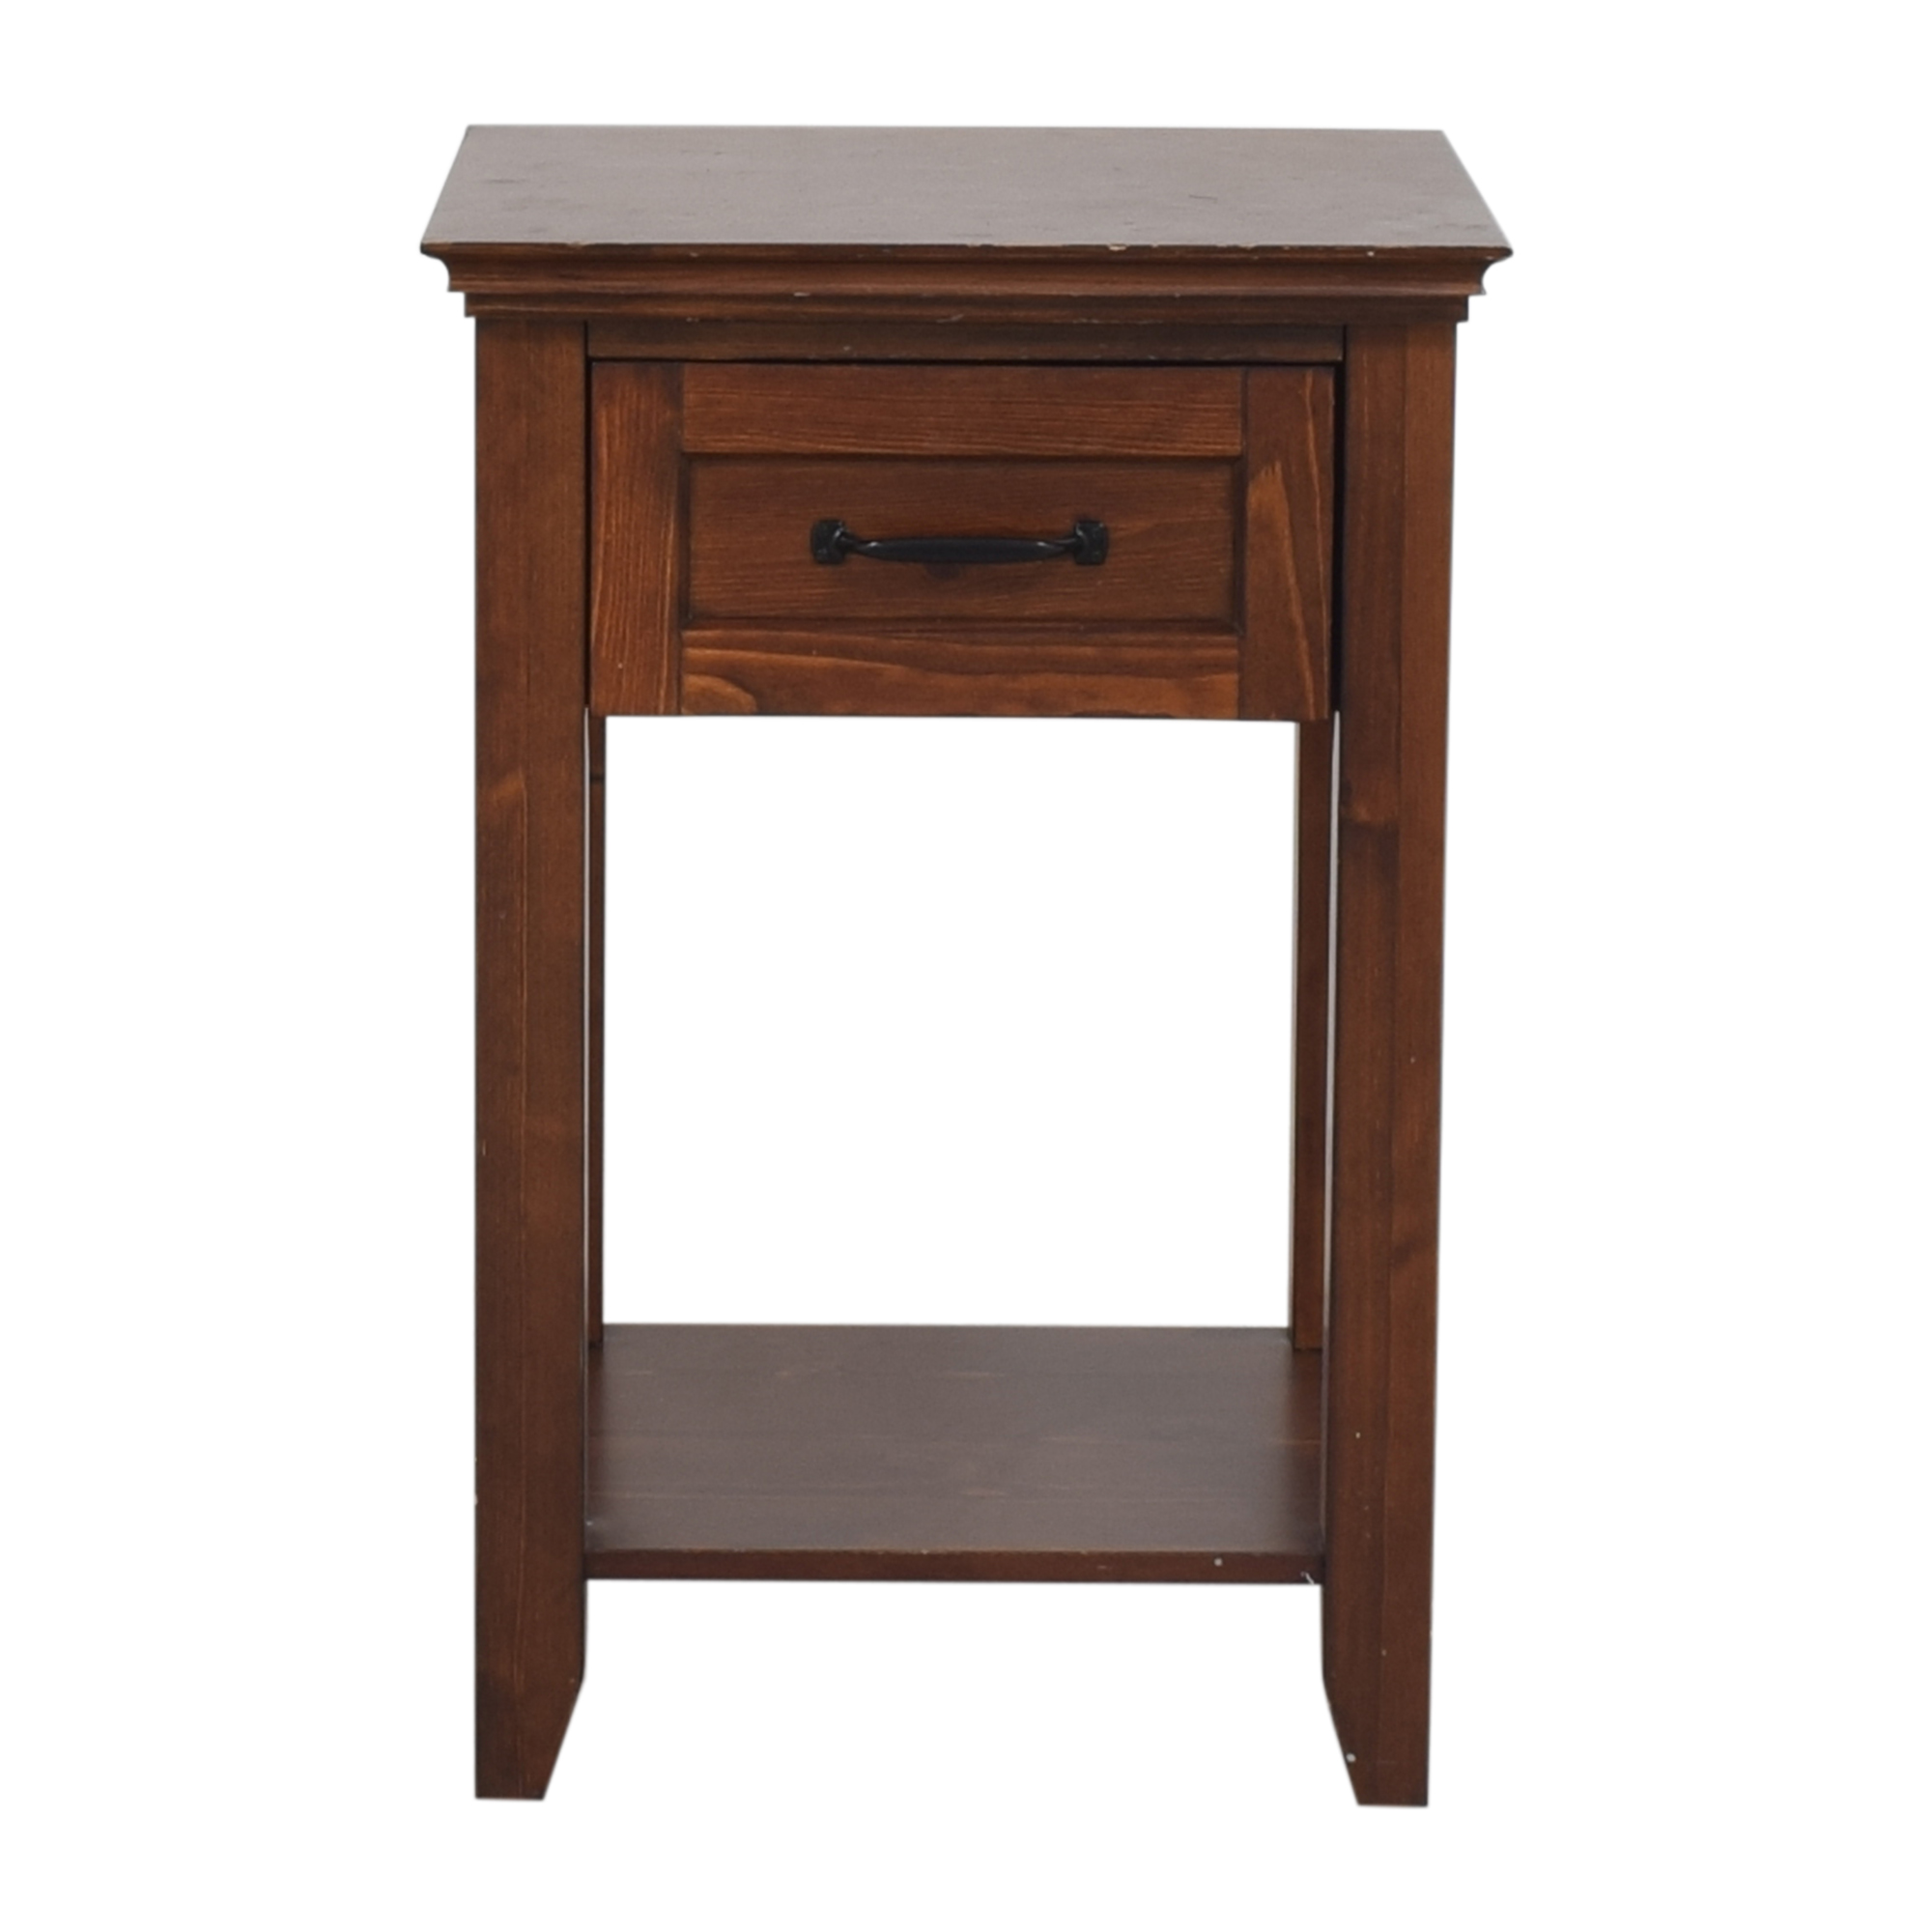 buy Pottery Barn Teen Pottery Barn Teen Hampton Nightstand online